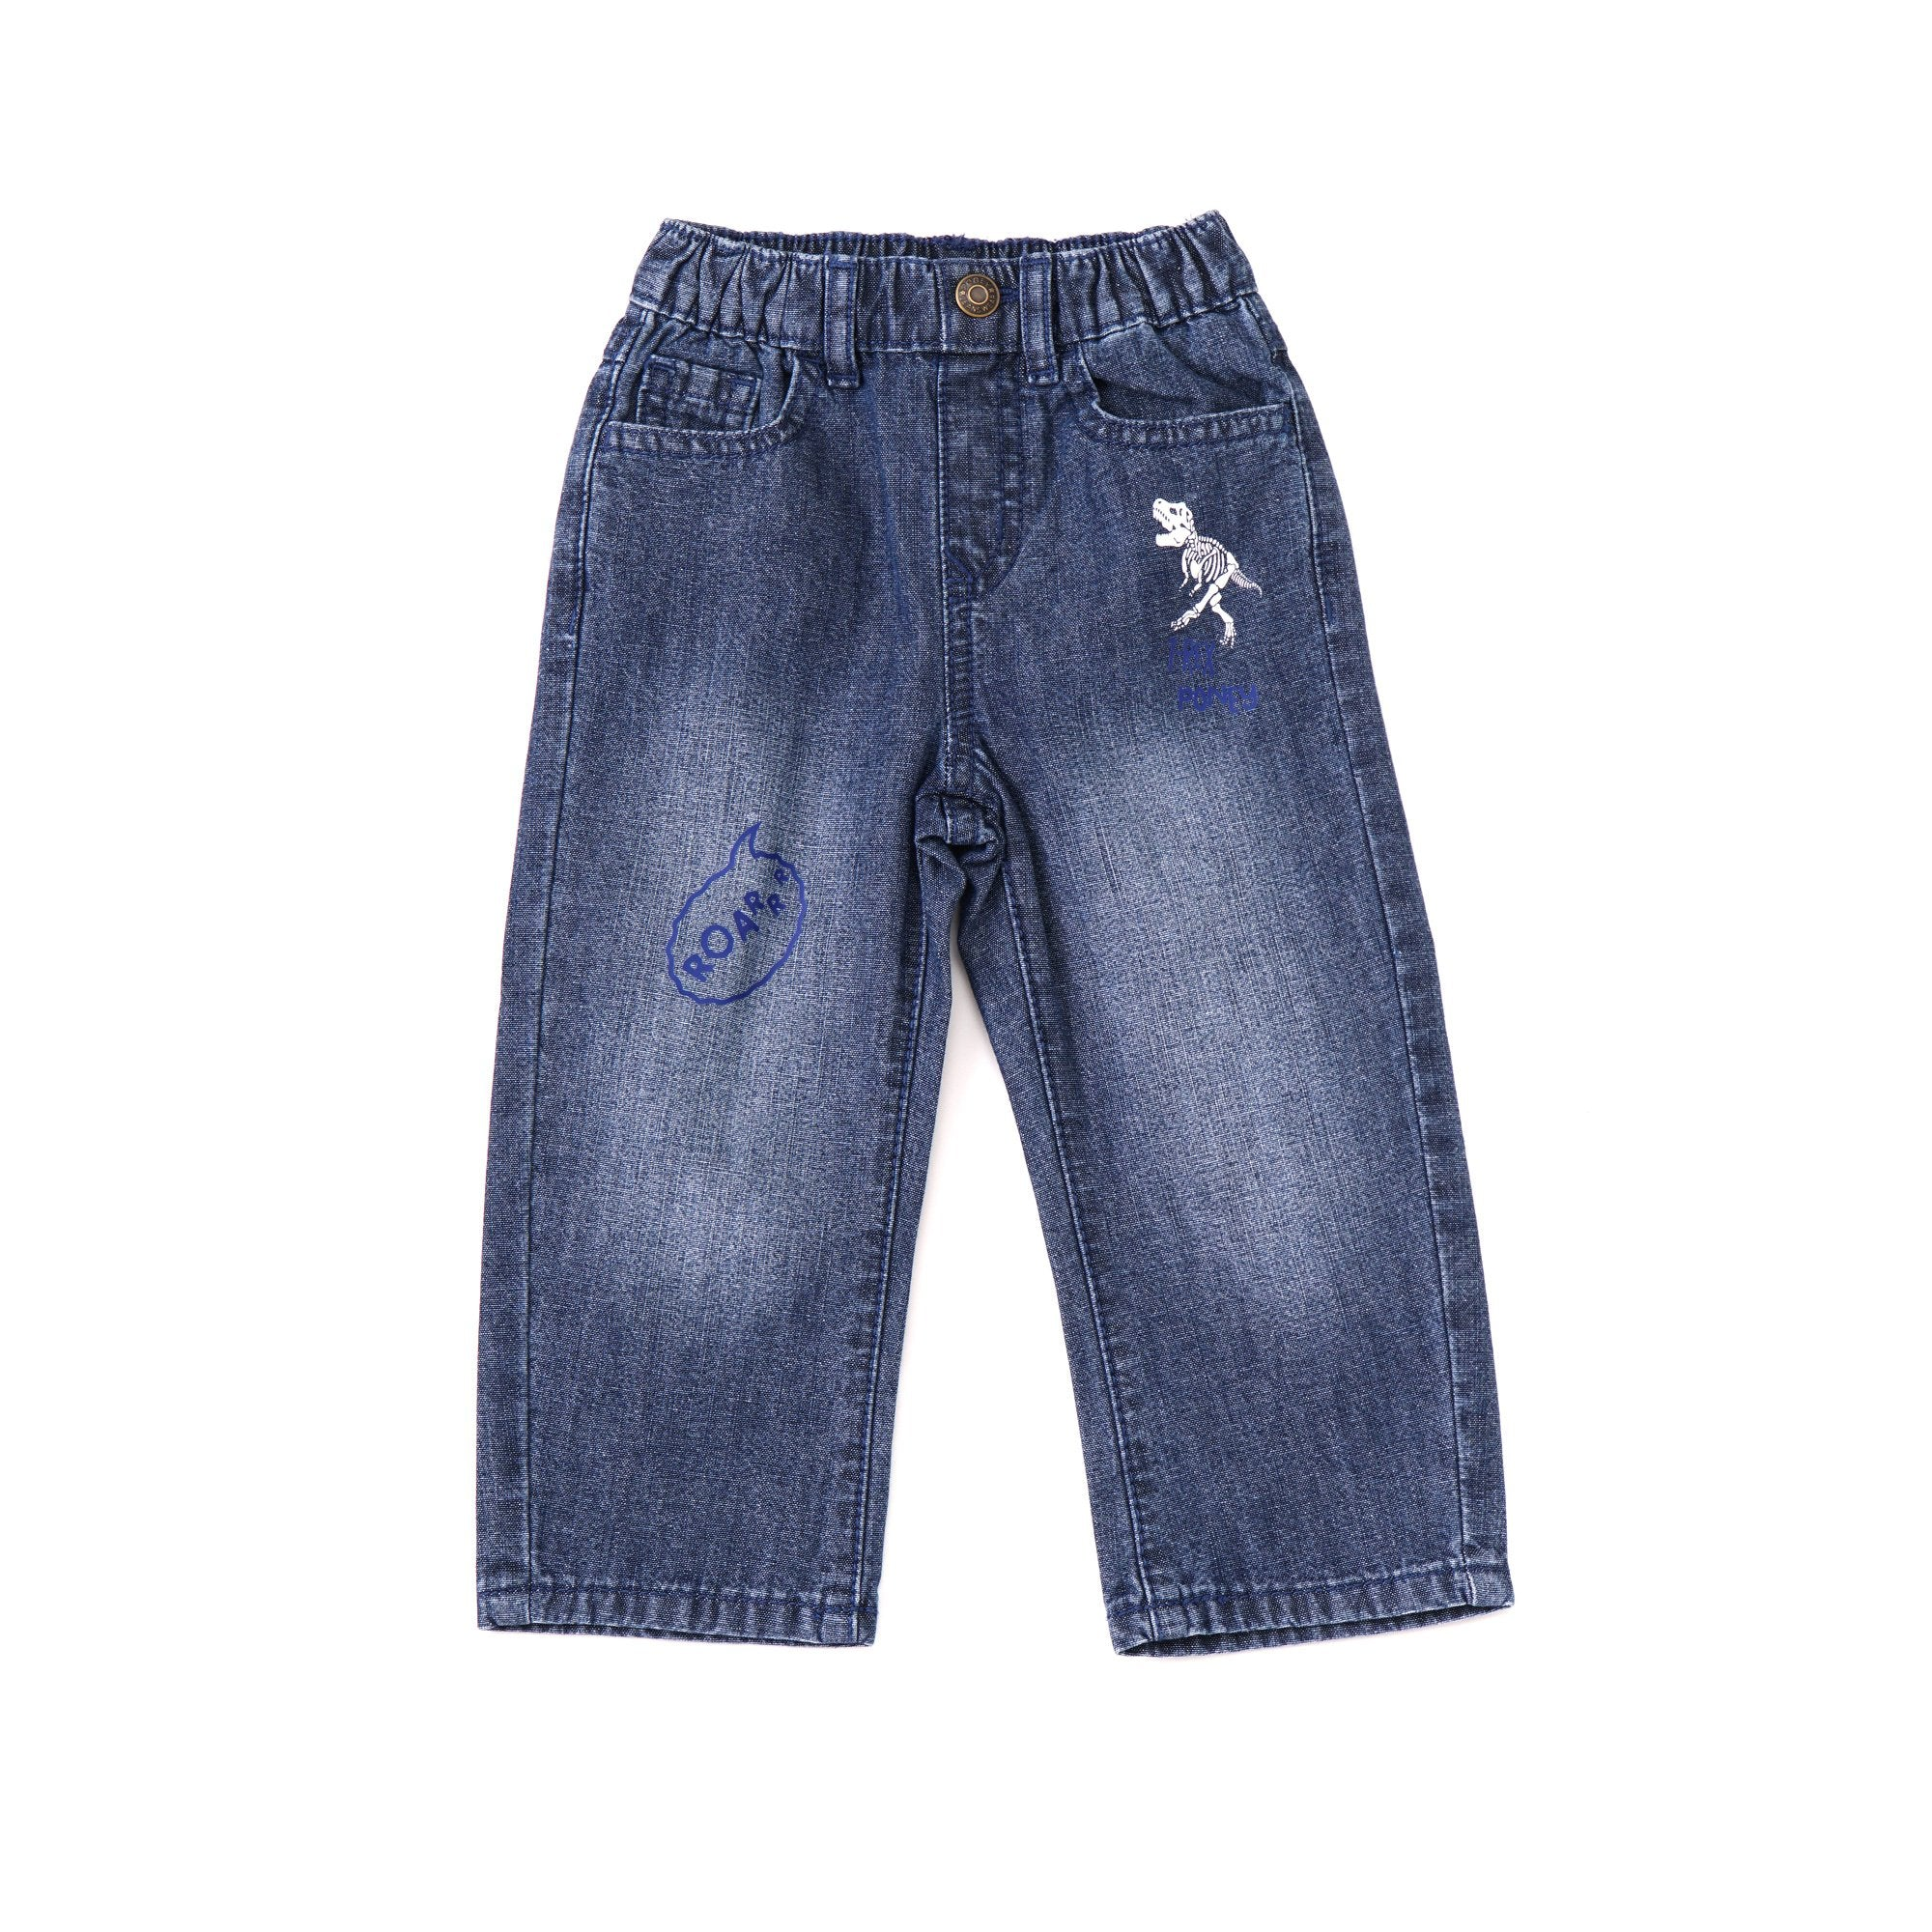 Poney Boys Jeans 7833 (6mths-12yrs)